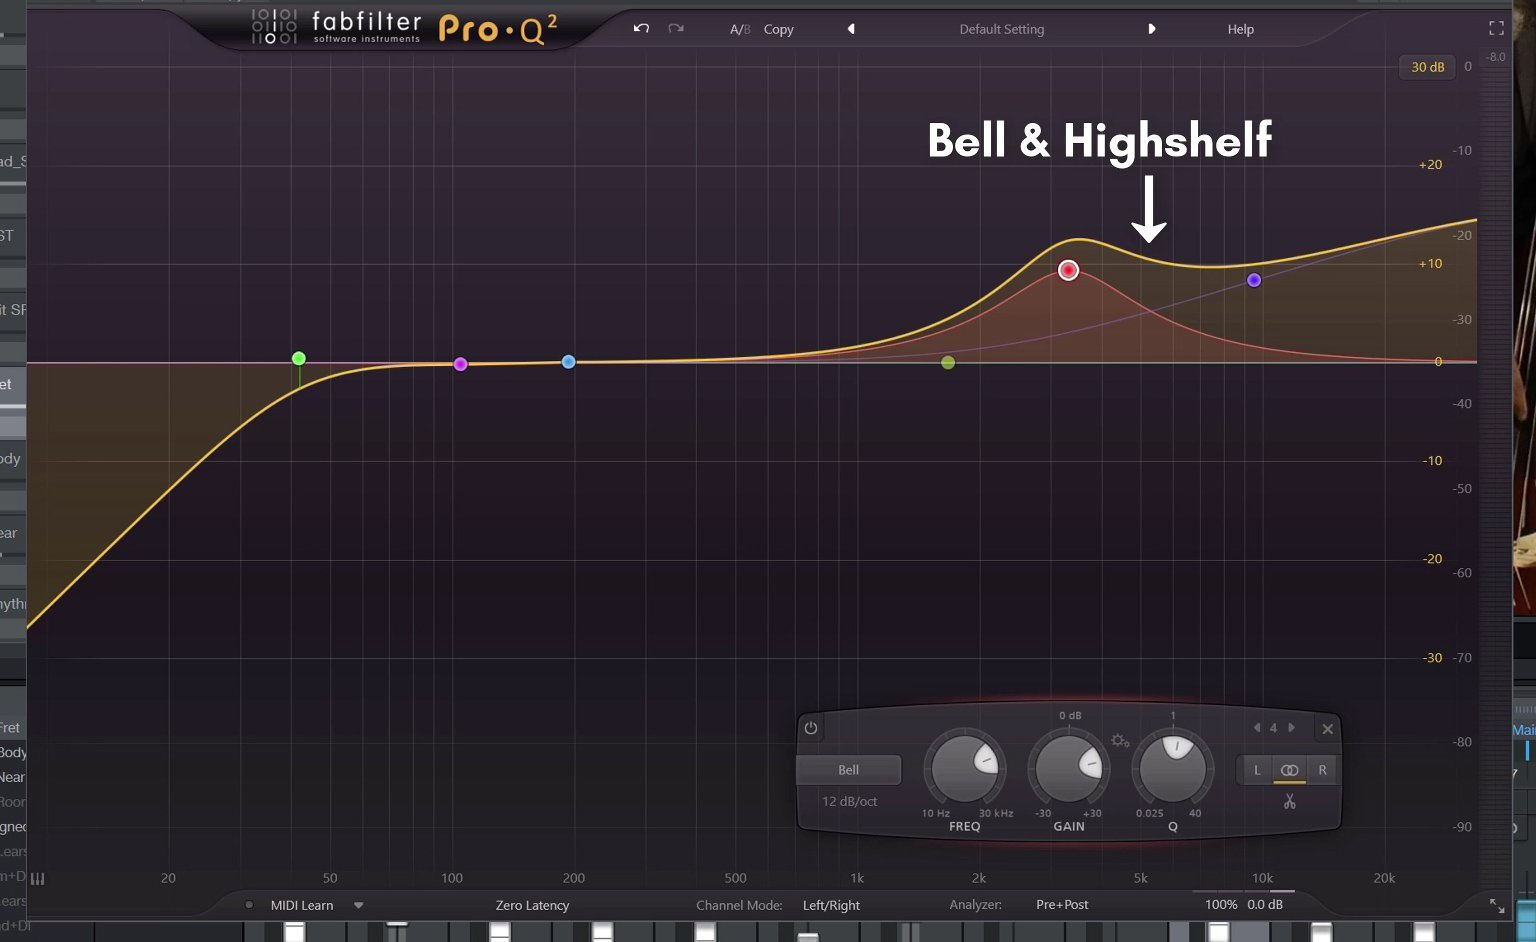 Screenshot of the Fabfilter ProQ VST Plugin applying a bell and highshelf EQ to a double bass recording